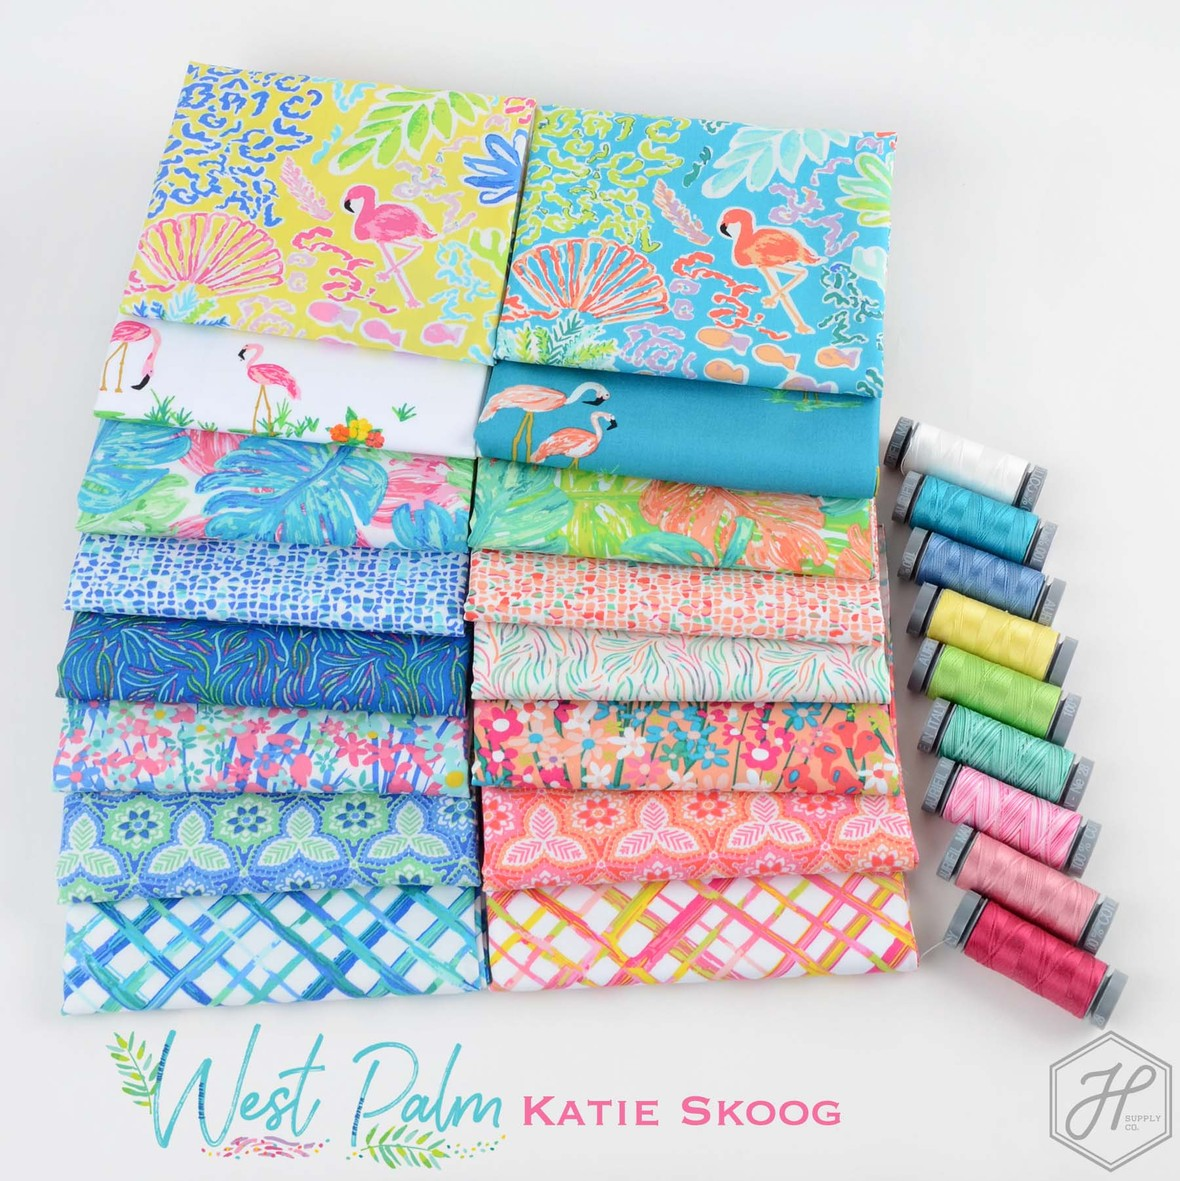 West Palm Fabric Katie Skoog at Hawthorne Supply Co